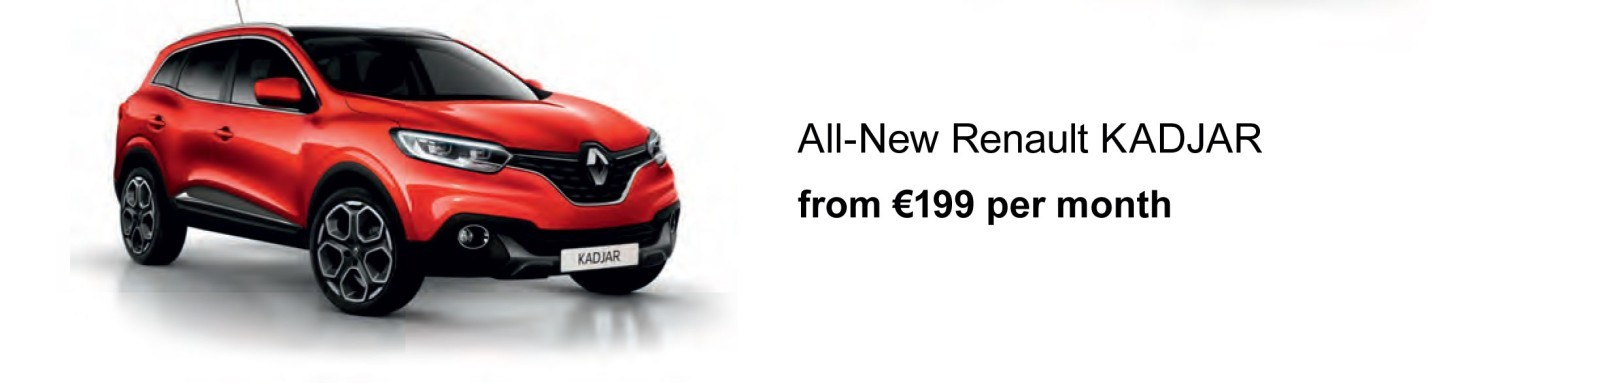 February-Offers-Renault_img8